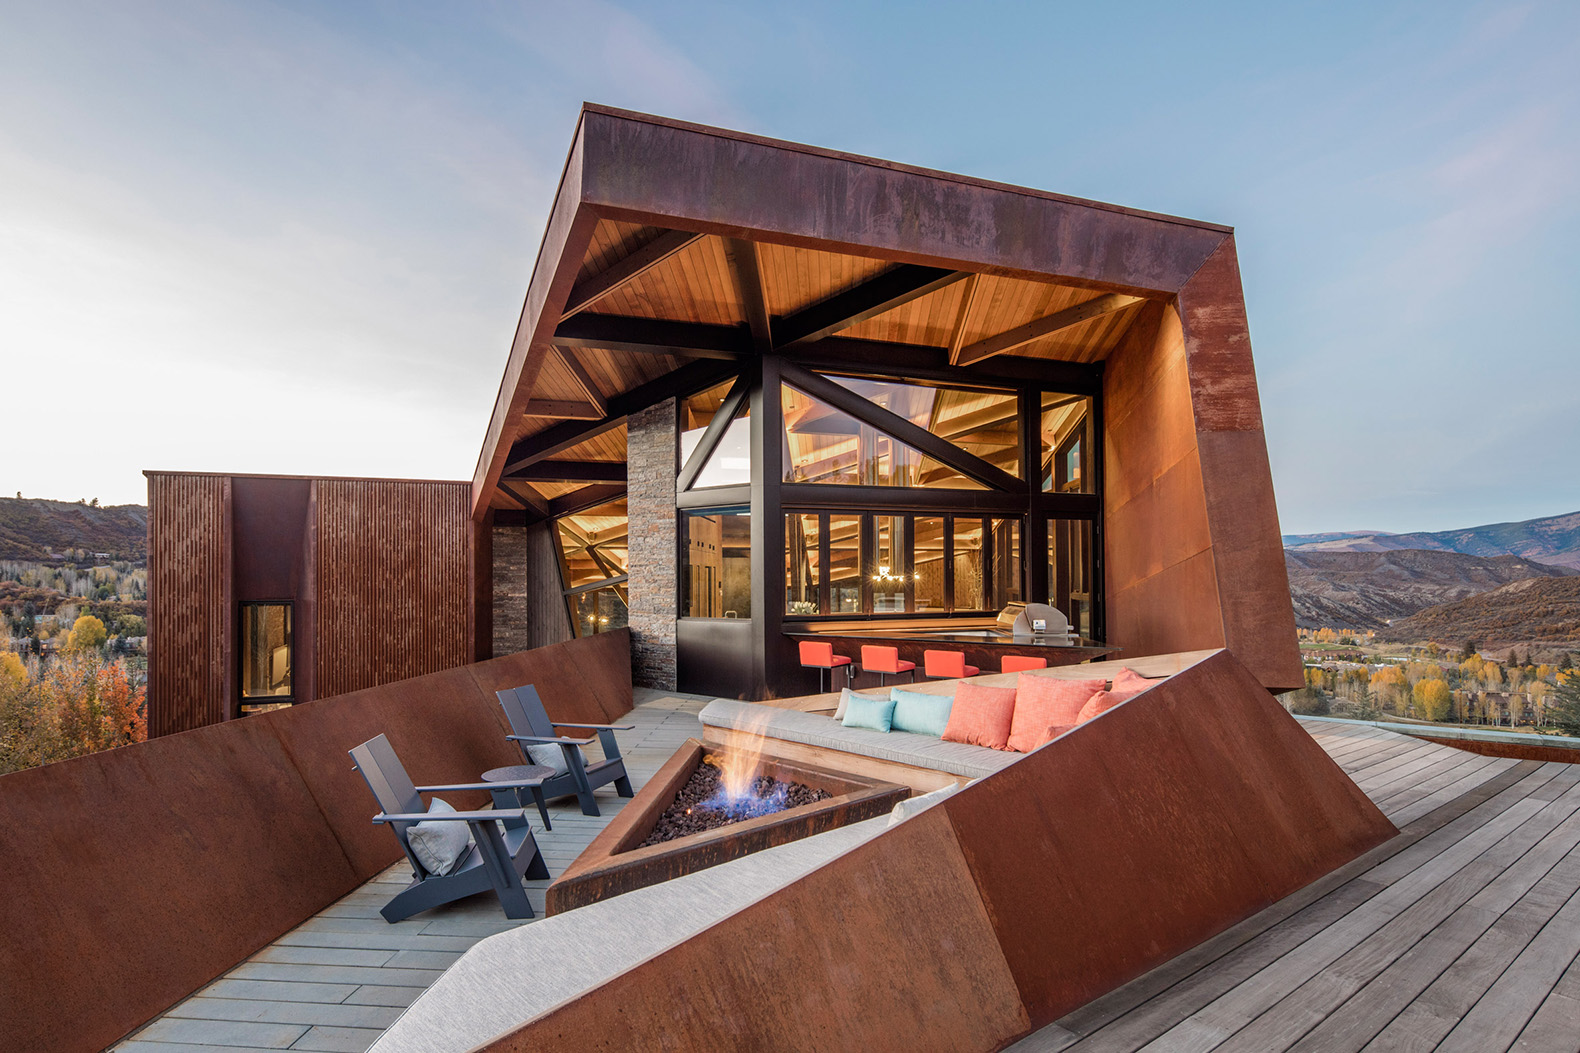 This house from Skylab Architecture mimics the appearance of the Rocky Mountains